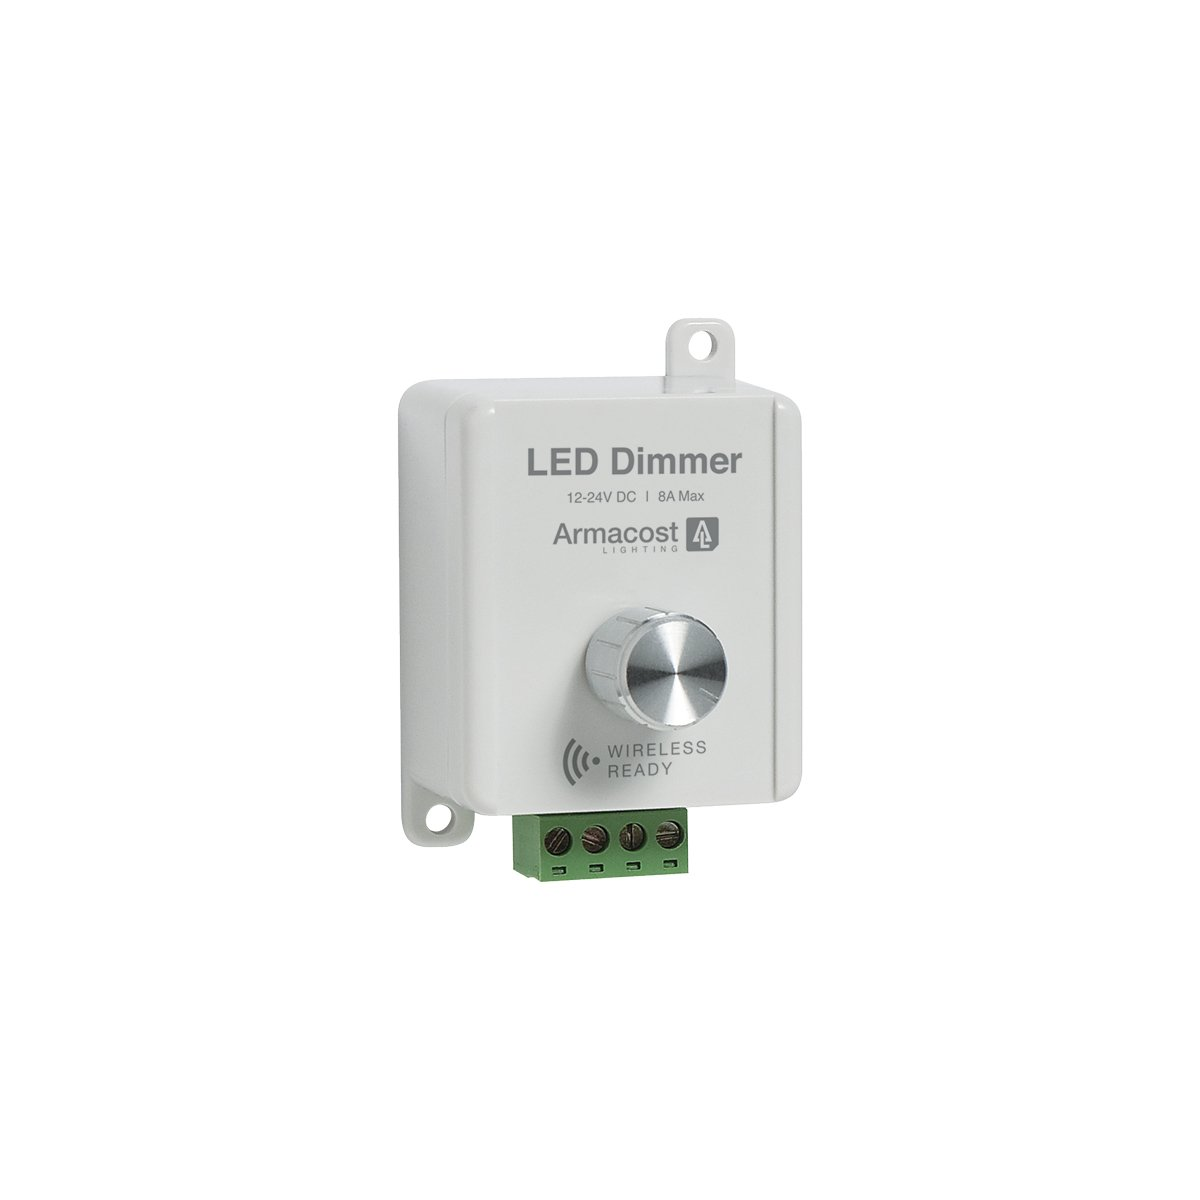 Armacost Lighting 511120 2-in-1 Led Dimmer